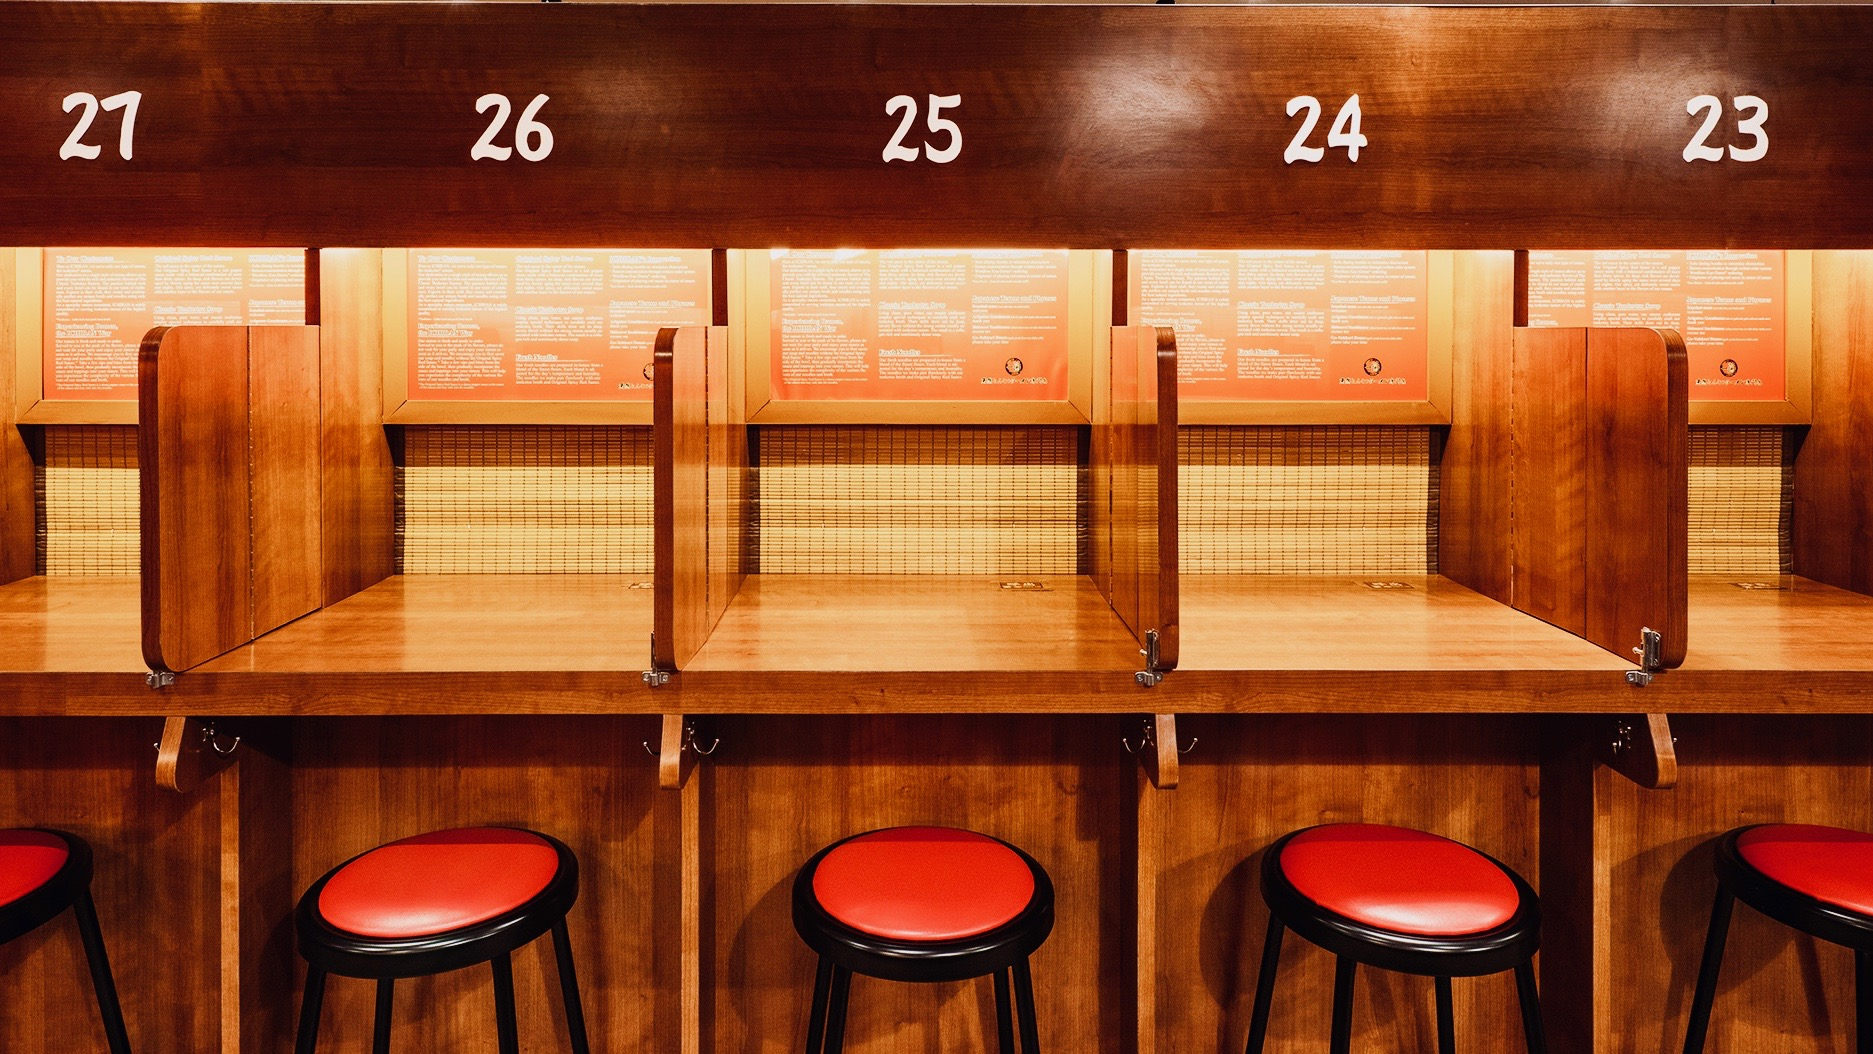 A cult Japanese ramen shop is making New York's Times Square a place for silent contemplation